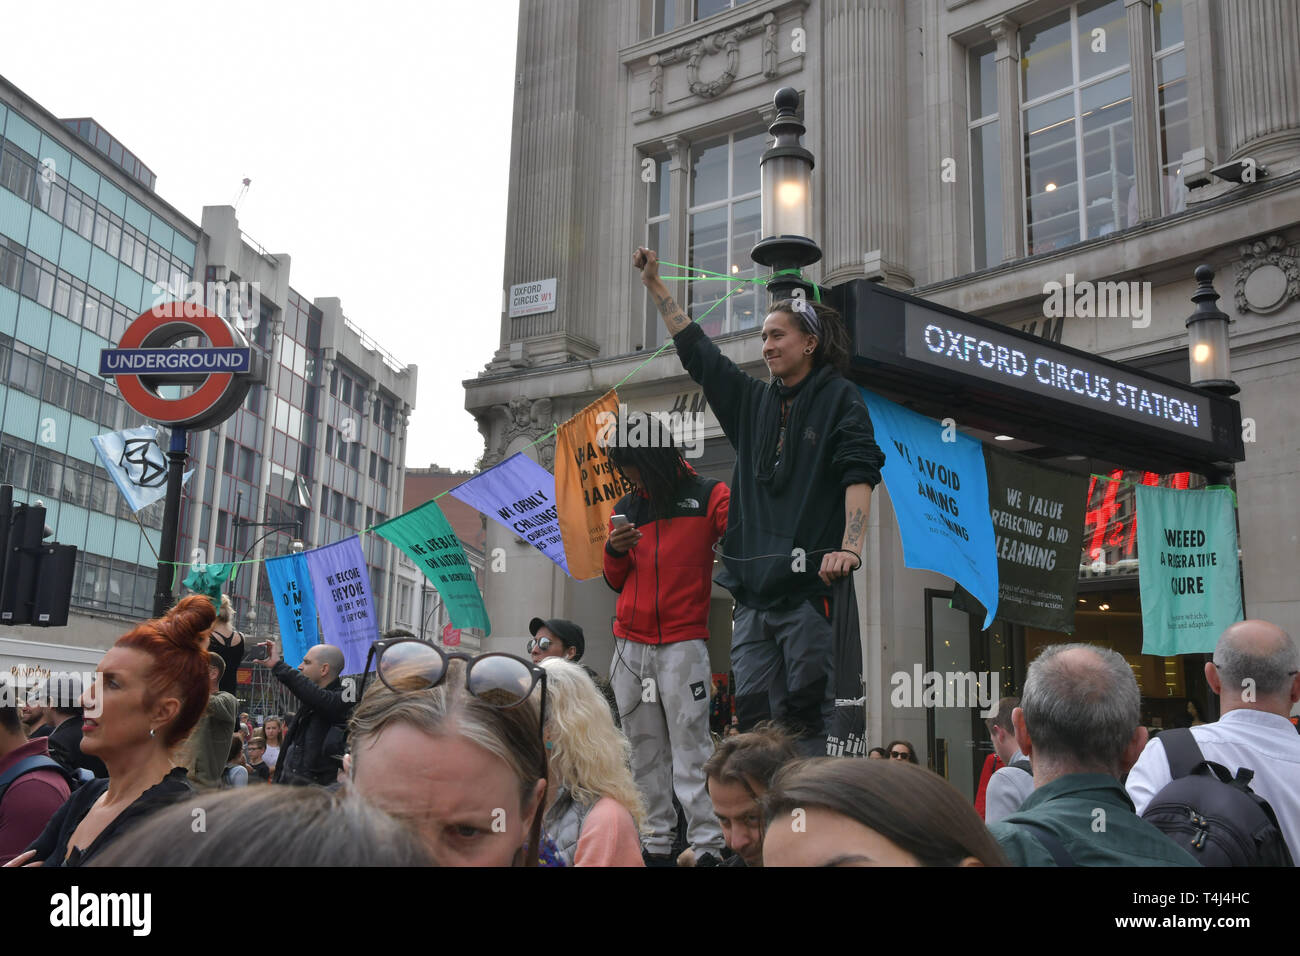 London, UK. 17th Apr, 2019. Activists demotration and camping in the middle of Oxford Street demand the UK govt to act on climate change or we will be camping as long as until we get our demand. As a journalist is it a threat or blackmail the UK govt. If the UK govt give in or surrender to their demand doesnt makes the govt weak? on 17 April 2019, London, UK. Credit: Picture Capital/Alamy Live News Stock Photo